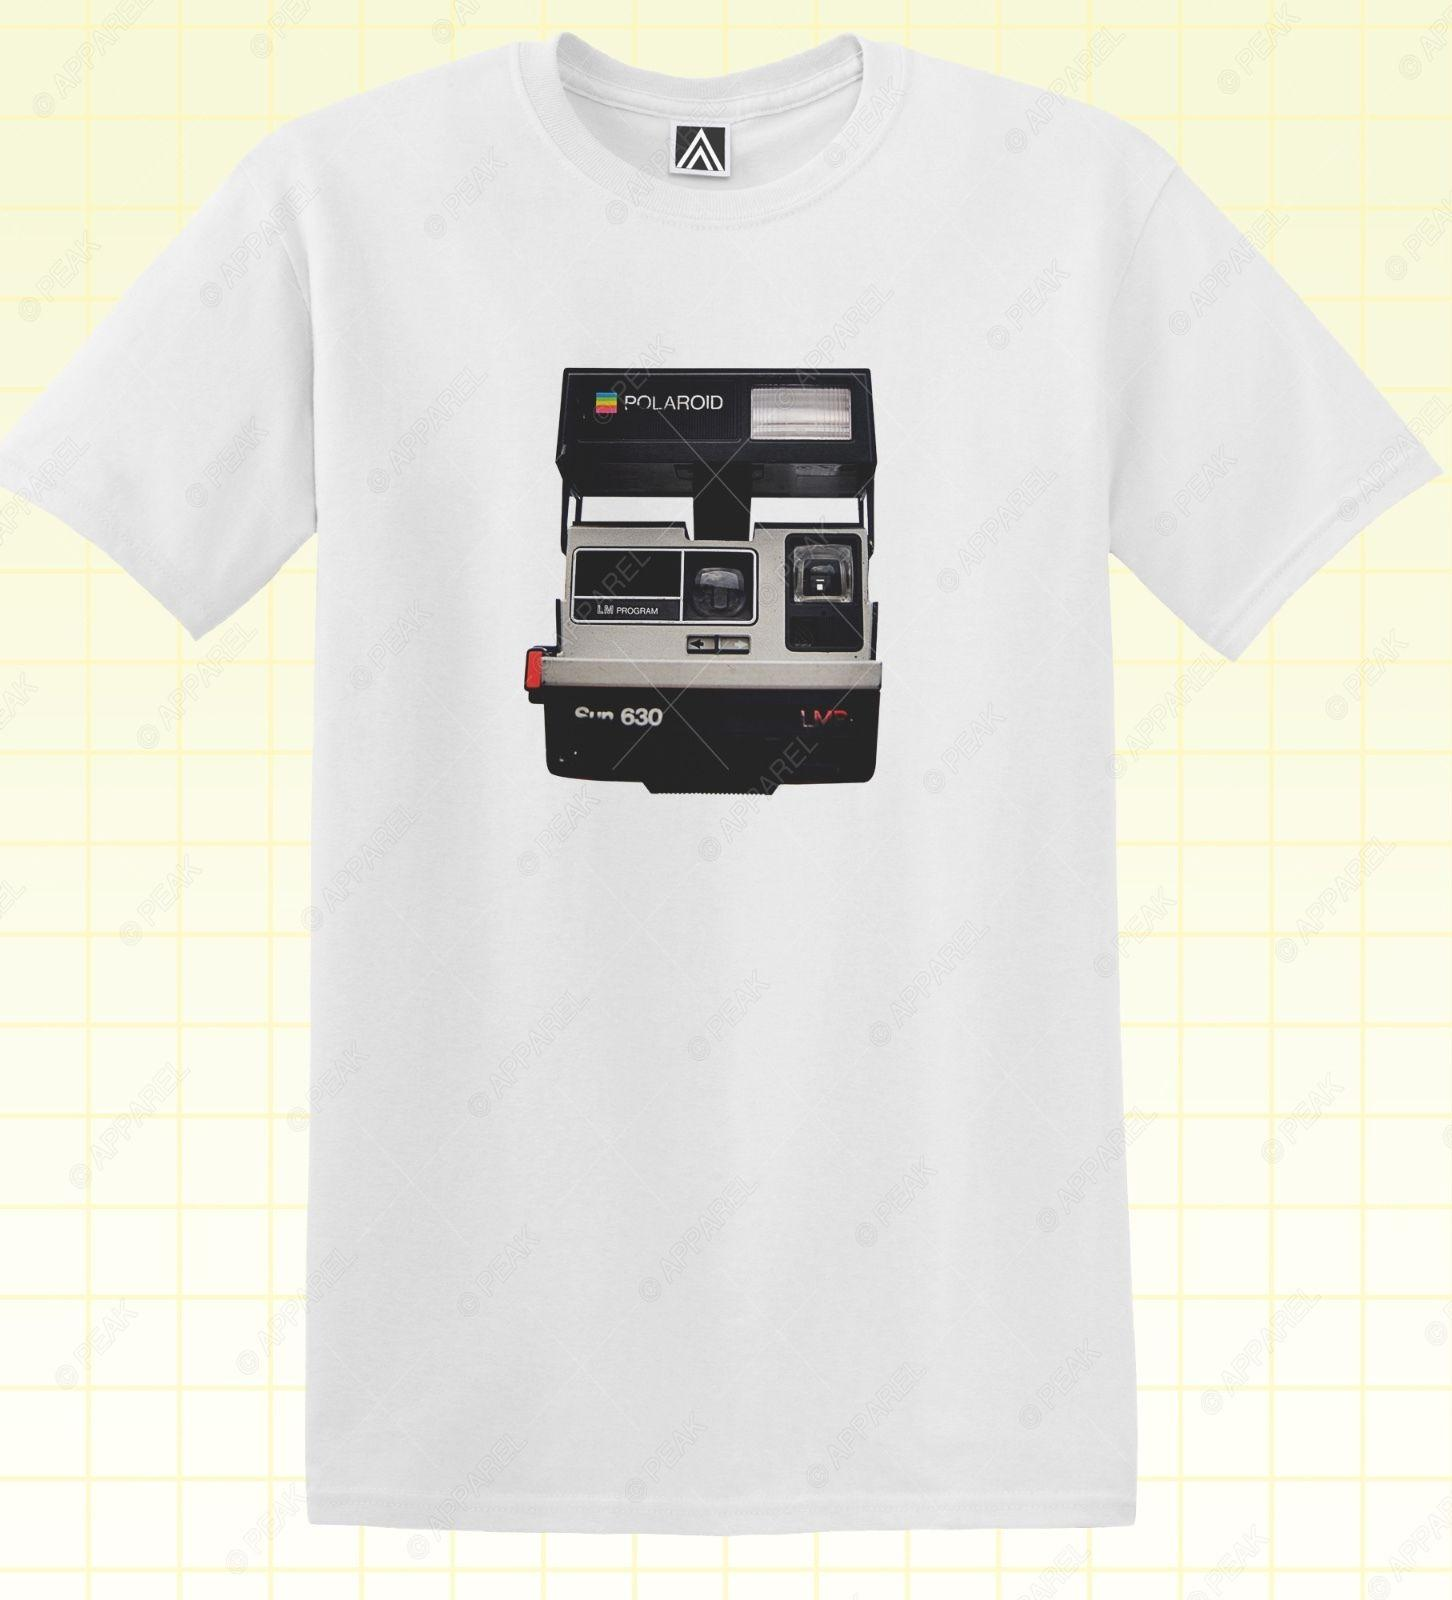 Vintage Camera T Shirt Instant Picture Hipster Retro Photo Tee Insta Blog  Topdenim Clothes Camiseta T Shirt Tee Shirt For Sale Worlds Funniest T  Shirts From ... 34b395c05b72f